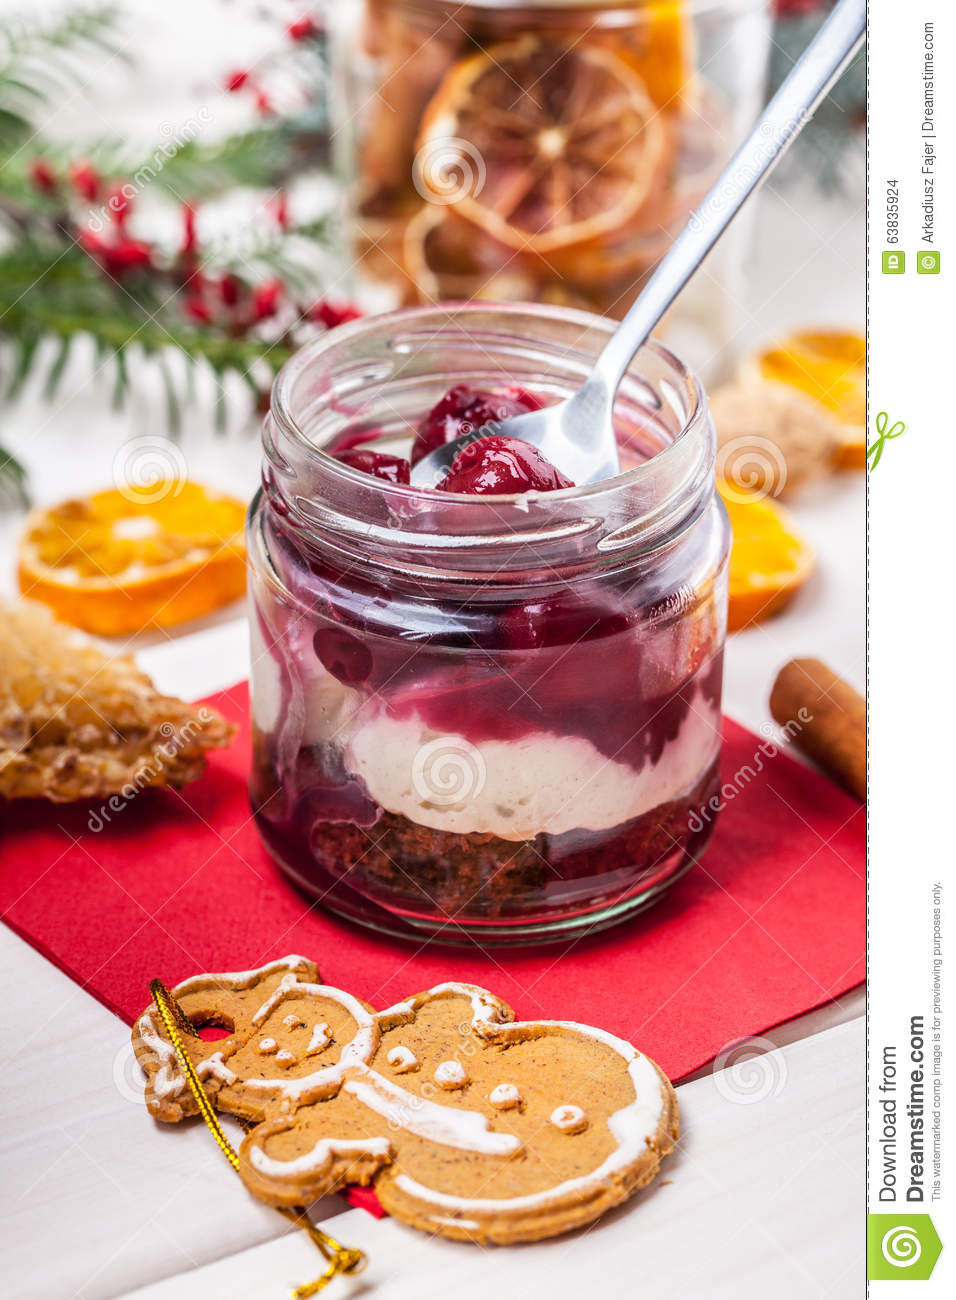 Layered dessert in a glass jar on a wooden table.